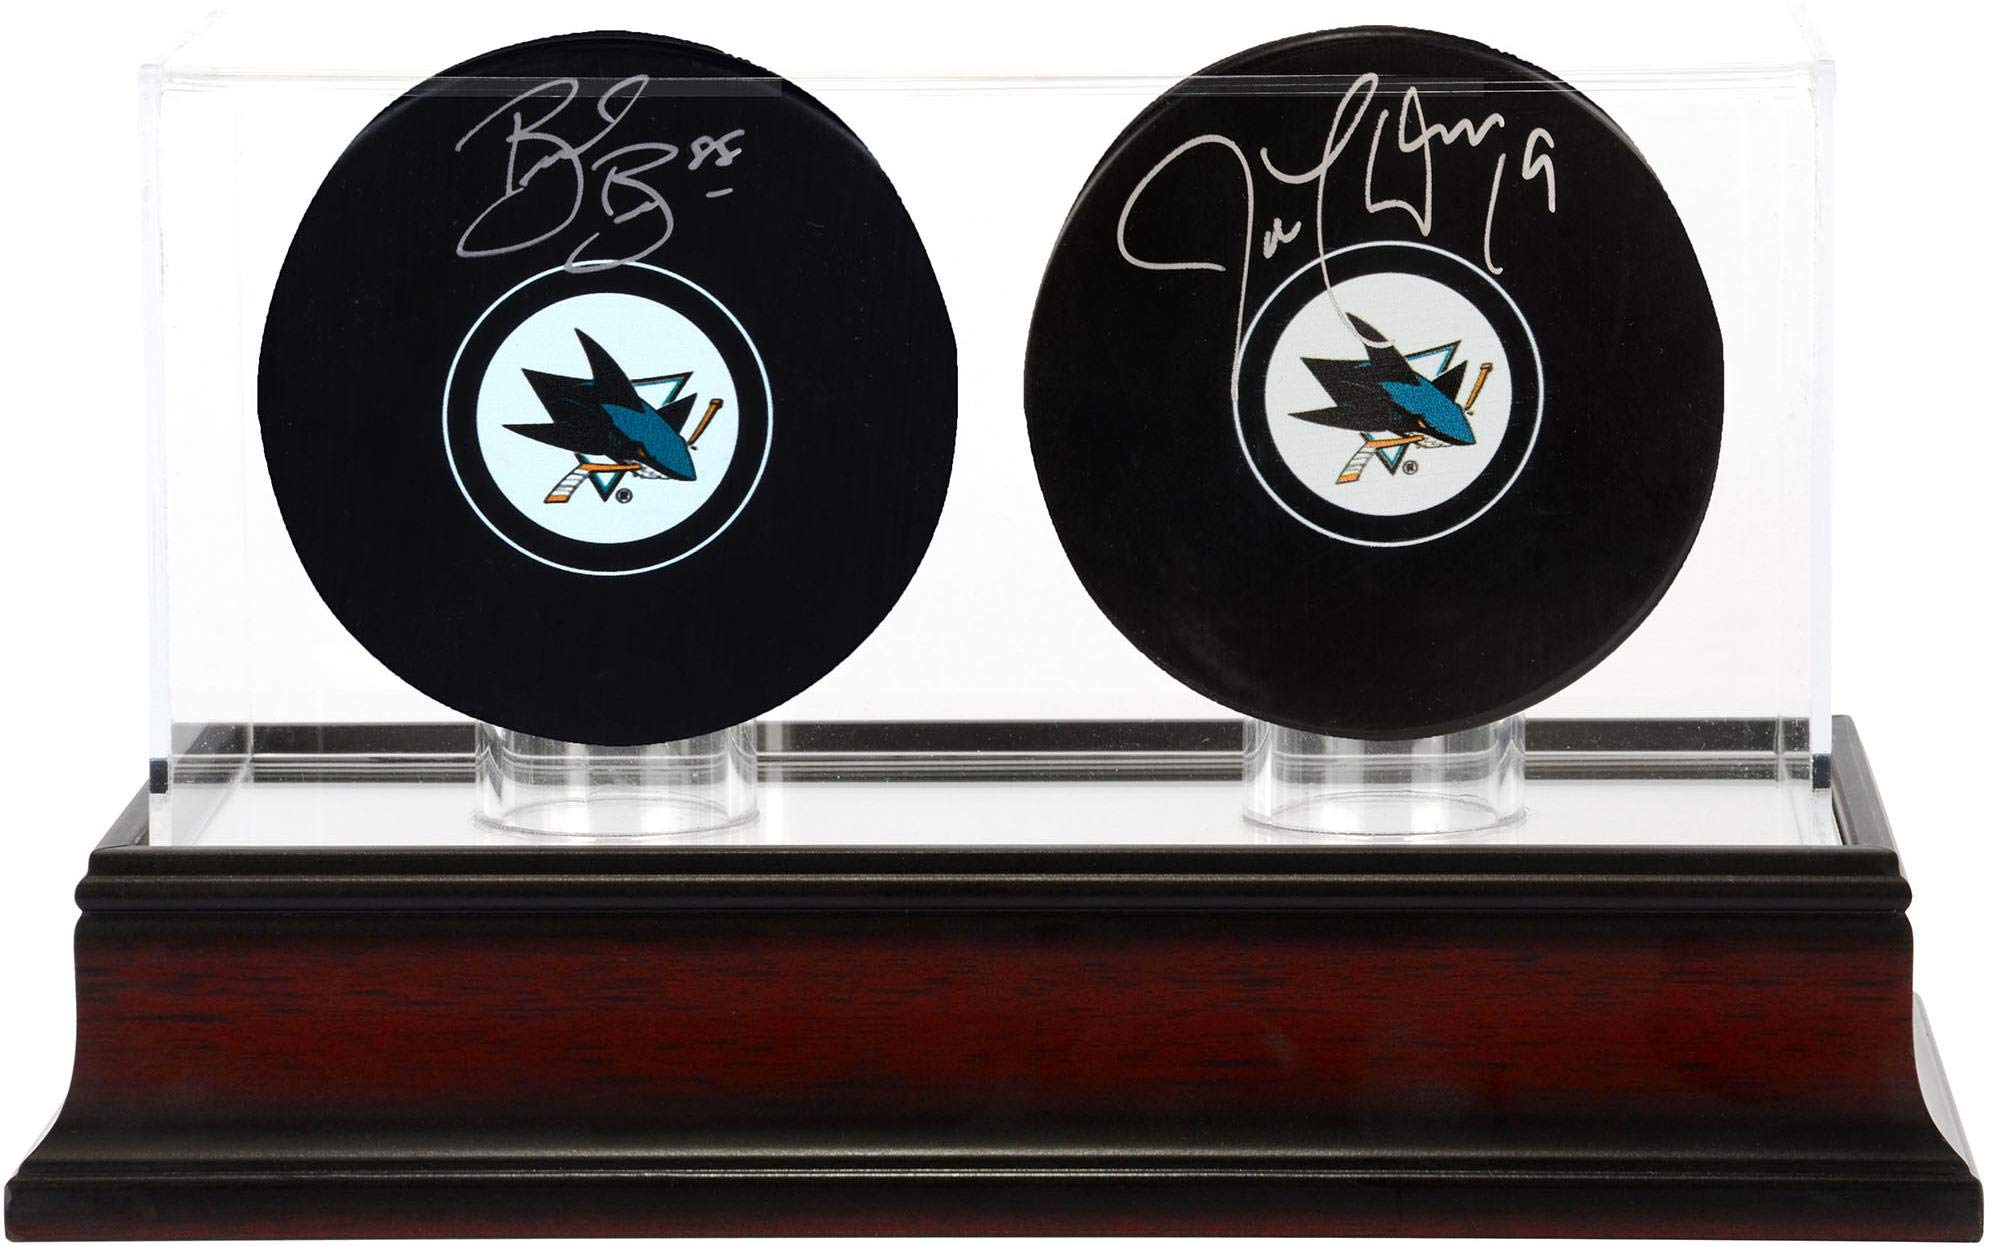 Brent Burns and Joe Thornton San Jose Sharks Autographed Hockey Pucks with Mahogany Two Puck Case Fanatics Authentic Certified